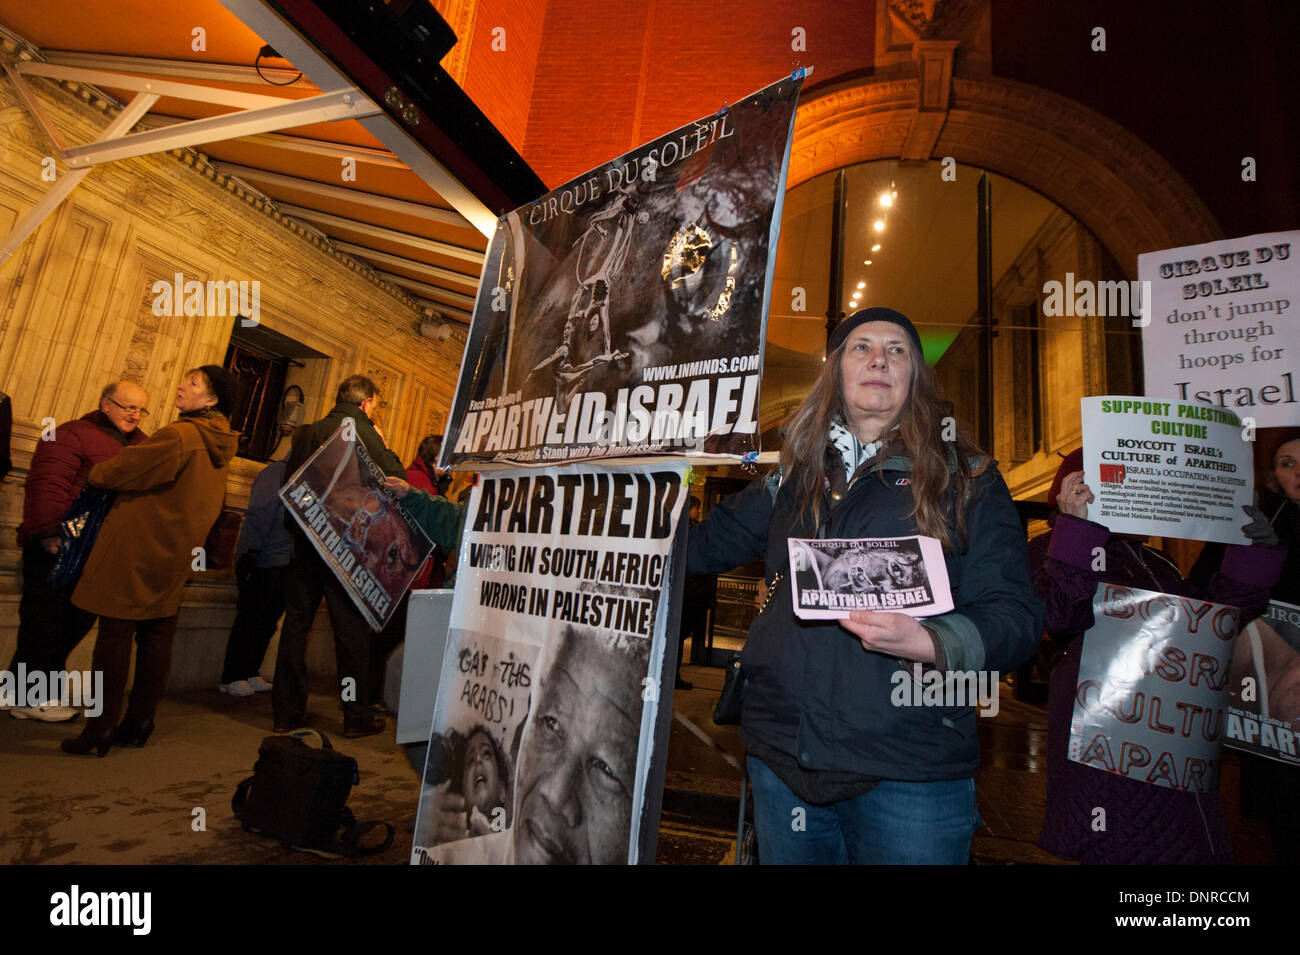 Royal Albert Hall, London, UK. 4th January 2014. Protesters demonstrated outside the Royal Albert Hall before Cirque de Soleil were due to perform. The activists are against the circus troupe performing in Tel Aviv later this year breaching the Palestinian call for a cultural boycott of Israel. Credit:  Lee Thomas/Alamy Live News - Stock Image